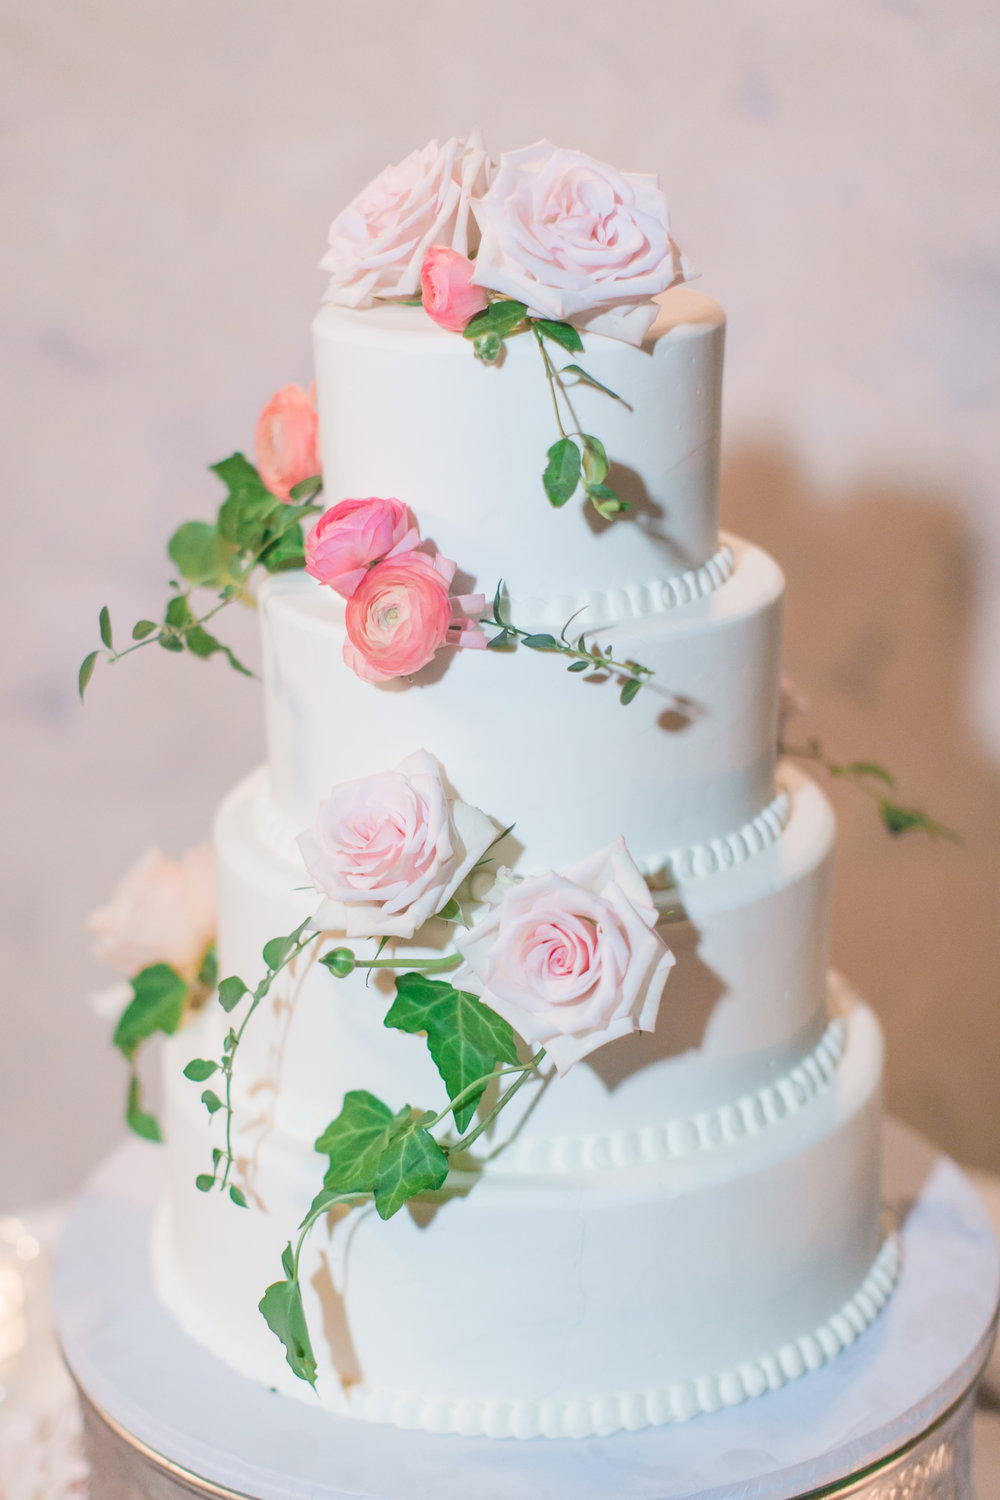 CassiClaire_wedding cake.jpg